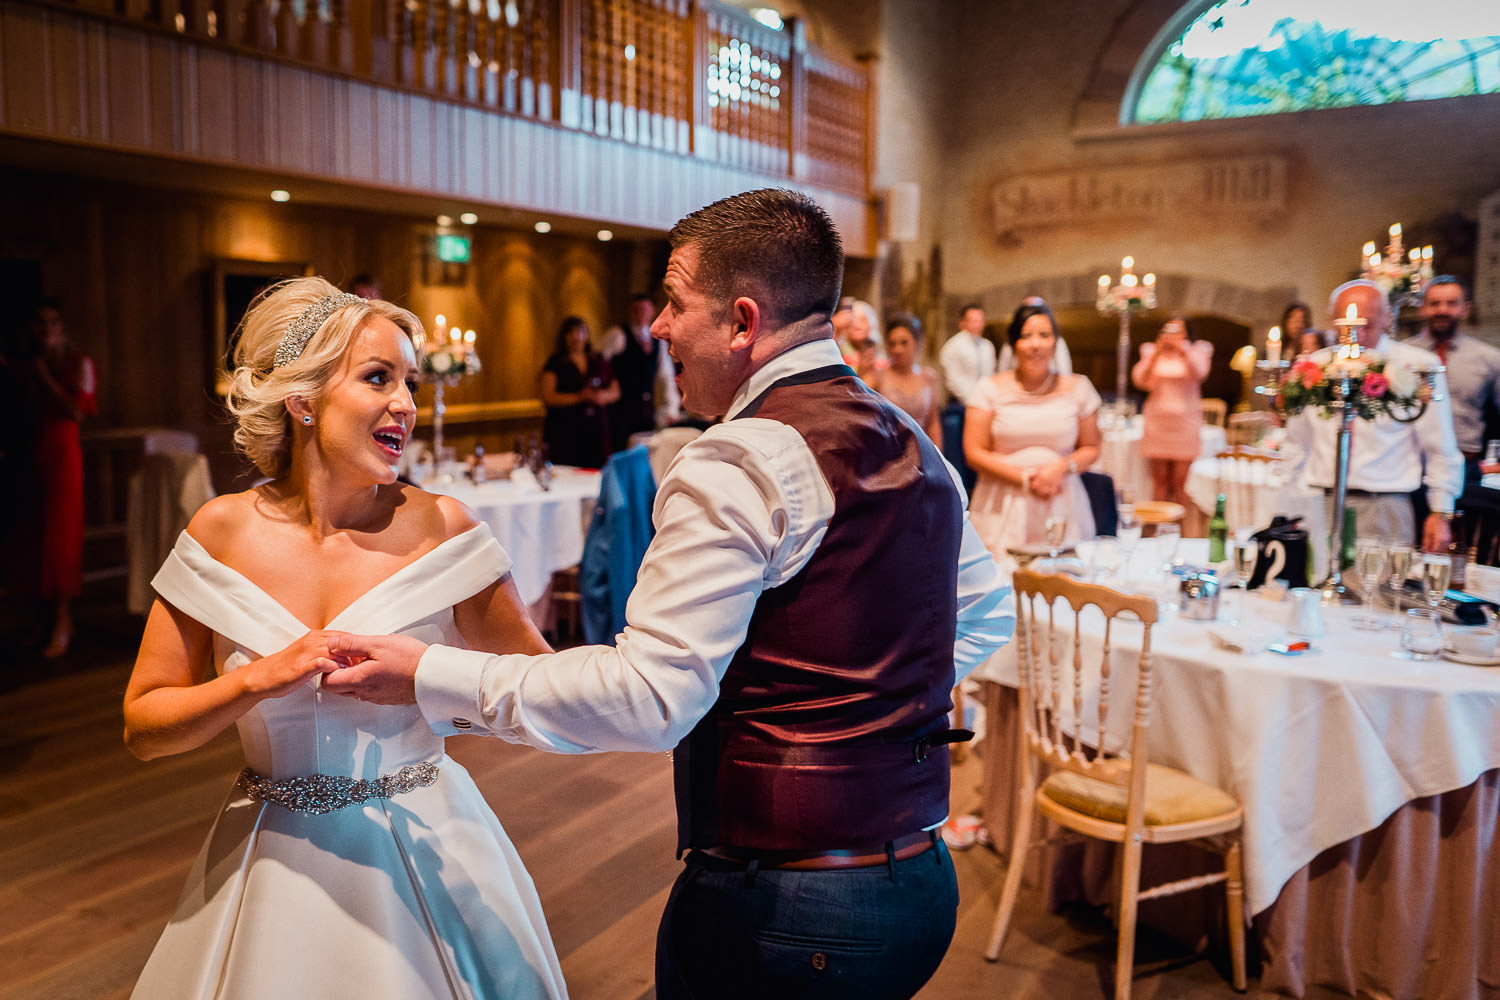 bride and groom dancing with wedding guests